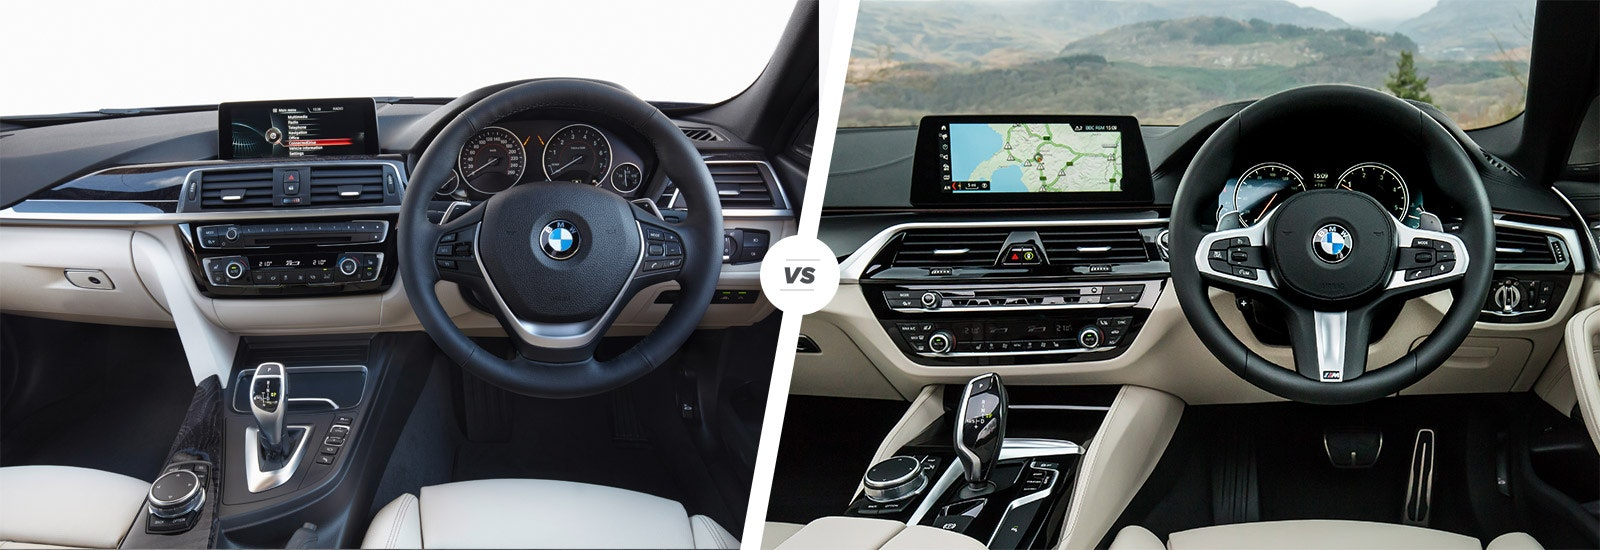 BMW 3 Series vs 5 Series – which should you buy? | carwow